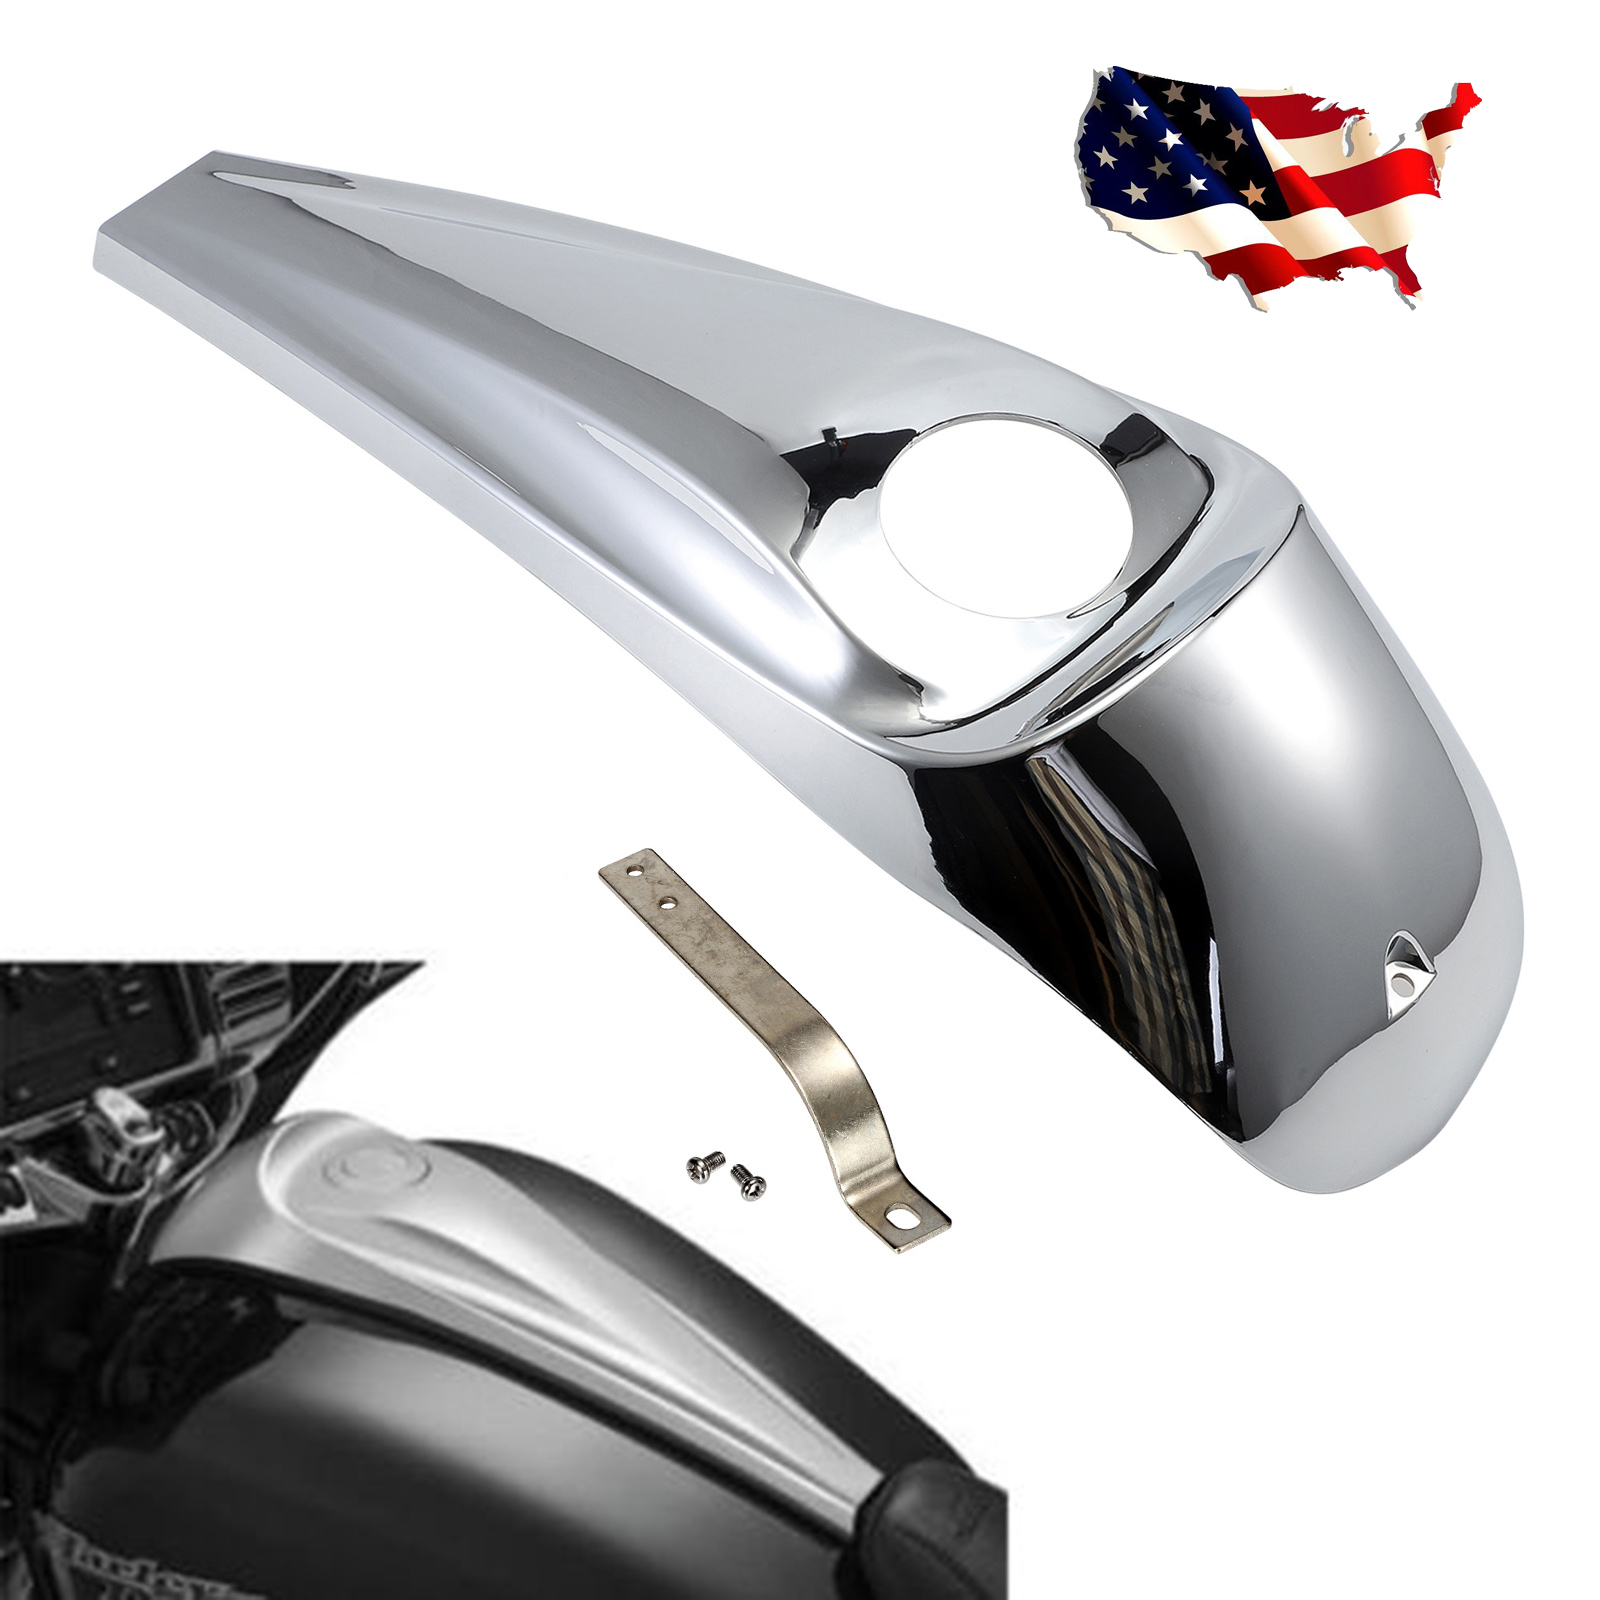 Chrome Motorcycle Smooth Dash Fuel Console For Street Glide Trikes FLHX 08-17 chrome